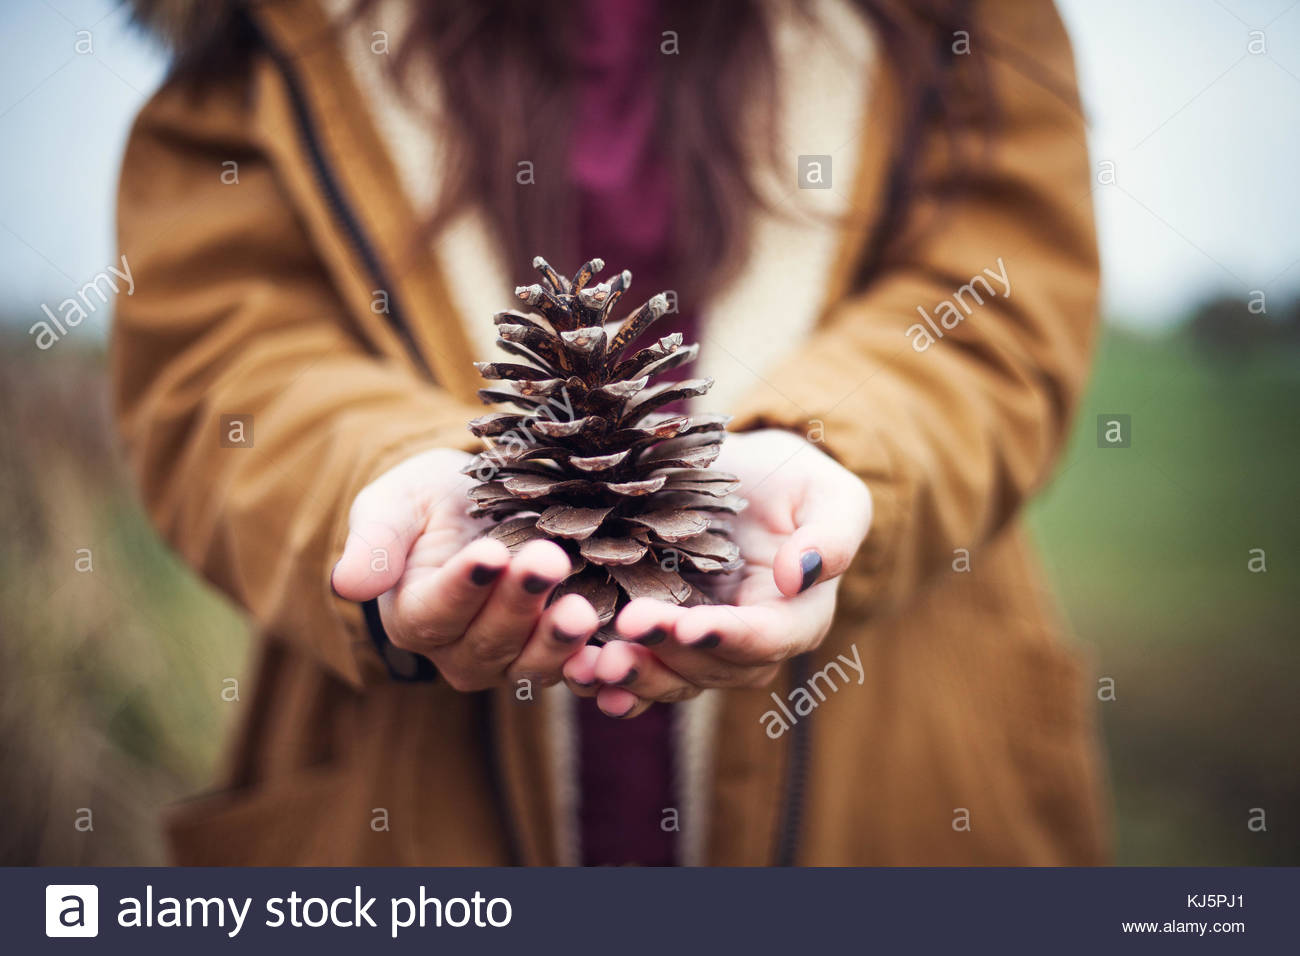 pine cone held by woman - Stock Image